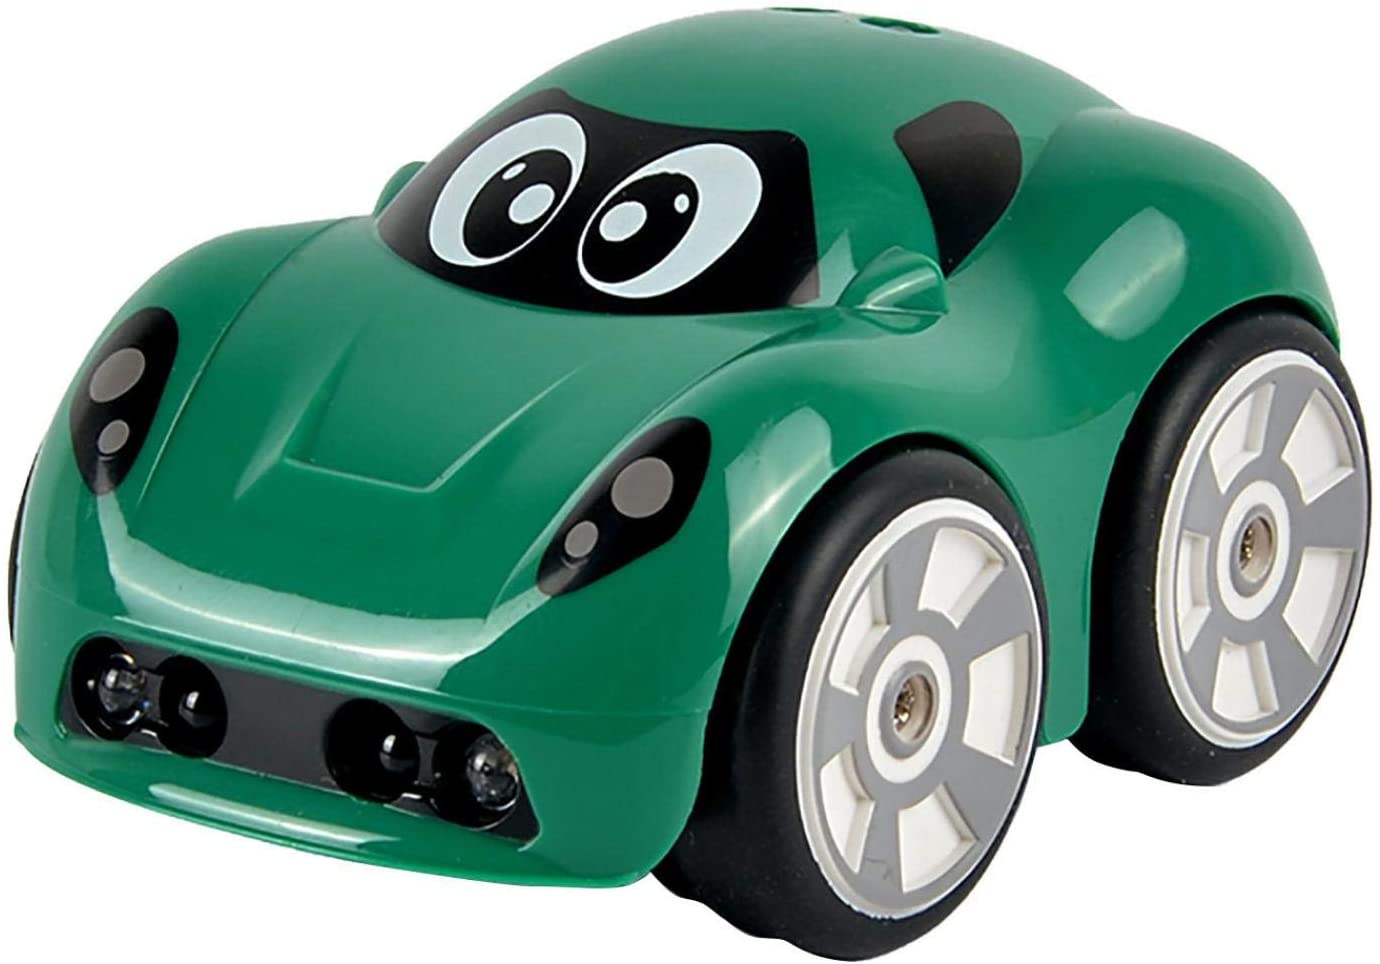 jeepjin Car Toy Electric Magic Hand Control Car Induction Follow Toy Remote Control Car Model Vehicle for Kids Boys and Girls Best Gift (Green)